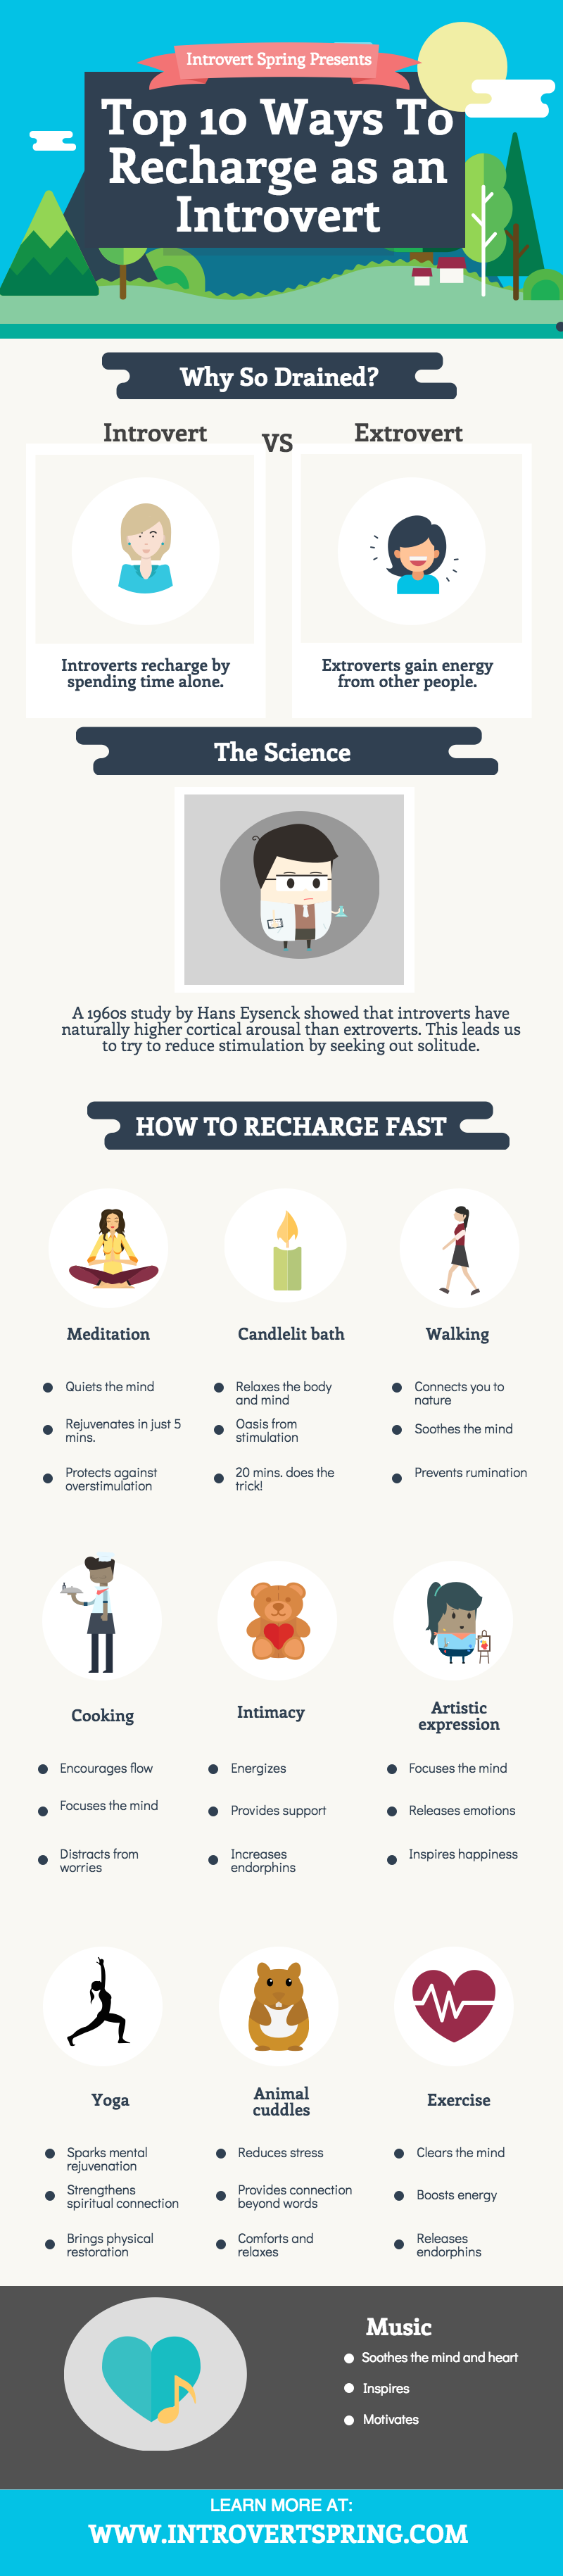 Top 10 Ways To Recharge Introvert Infographic